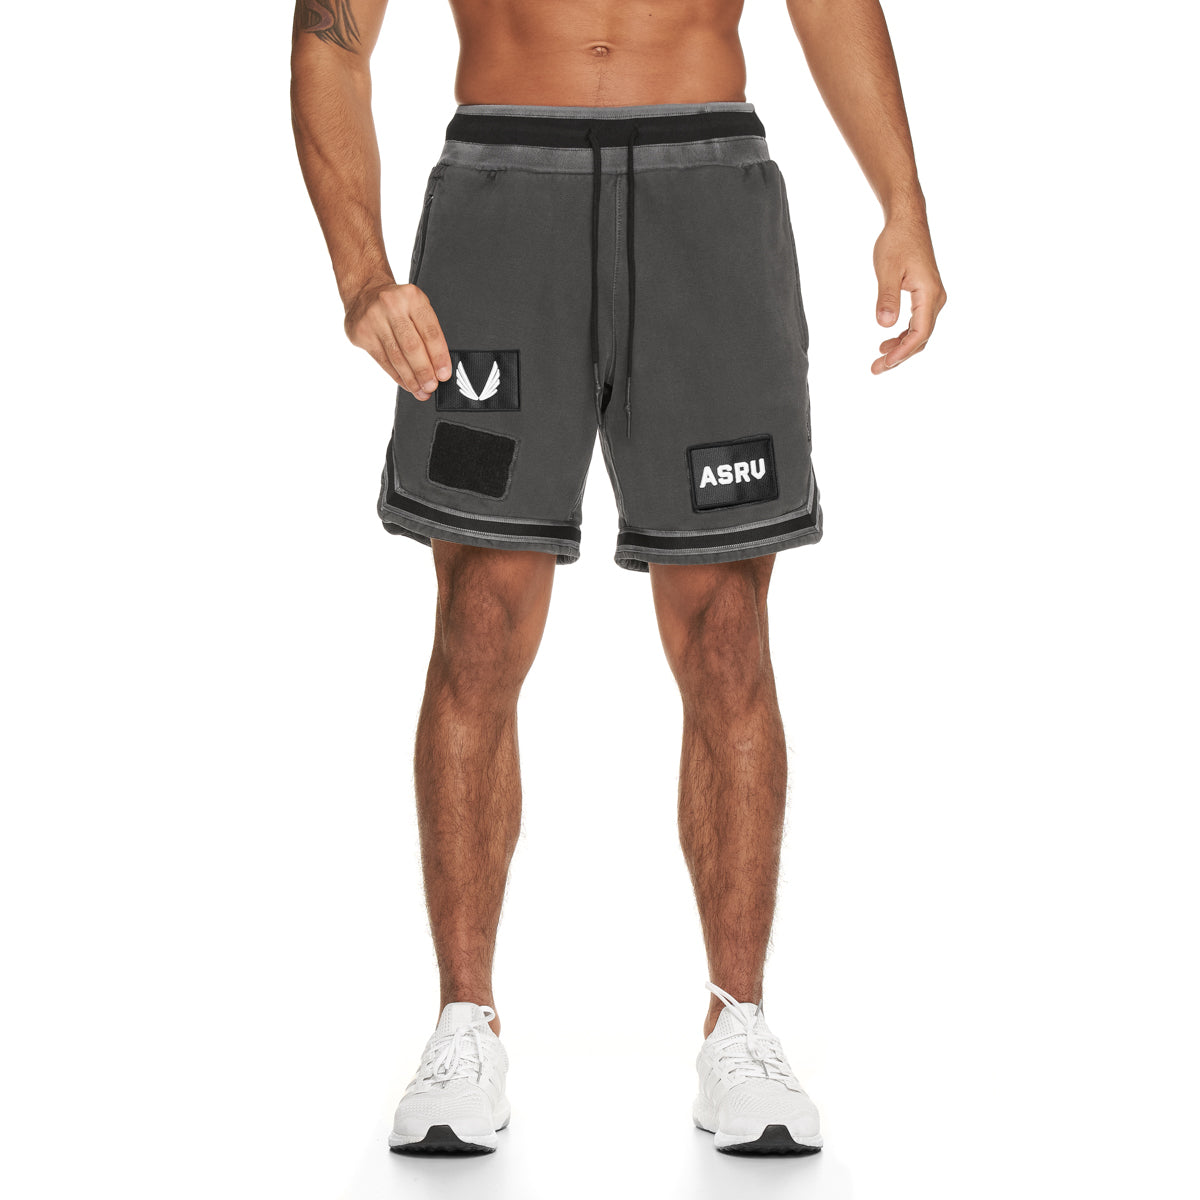 0287. Garment-Dyed Patch Basketball Shorts - Faded Grey